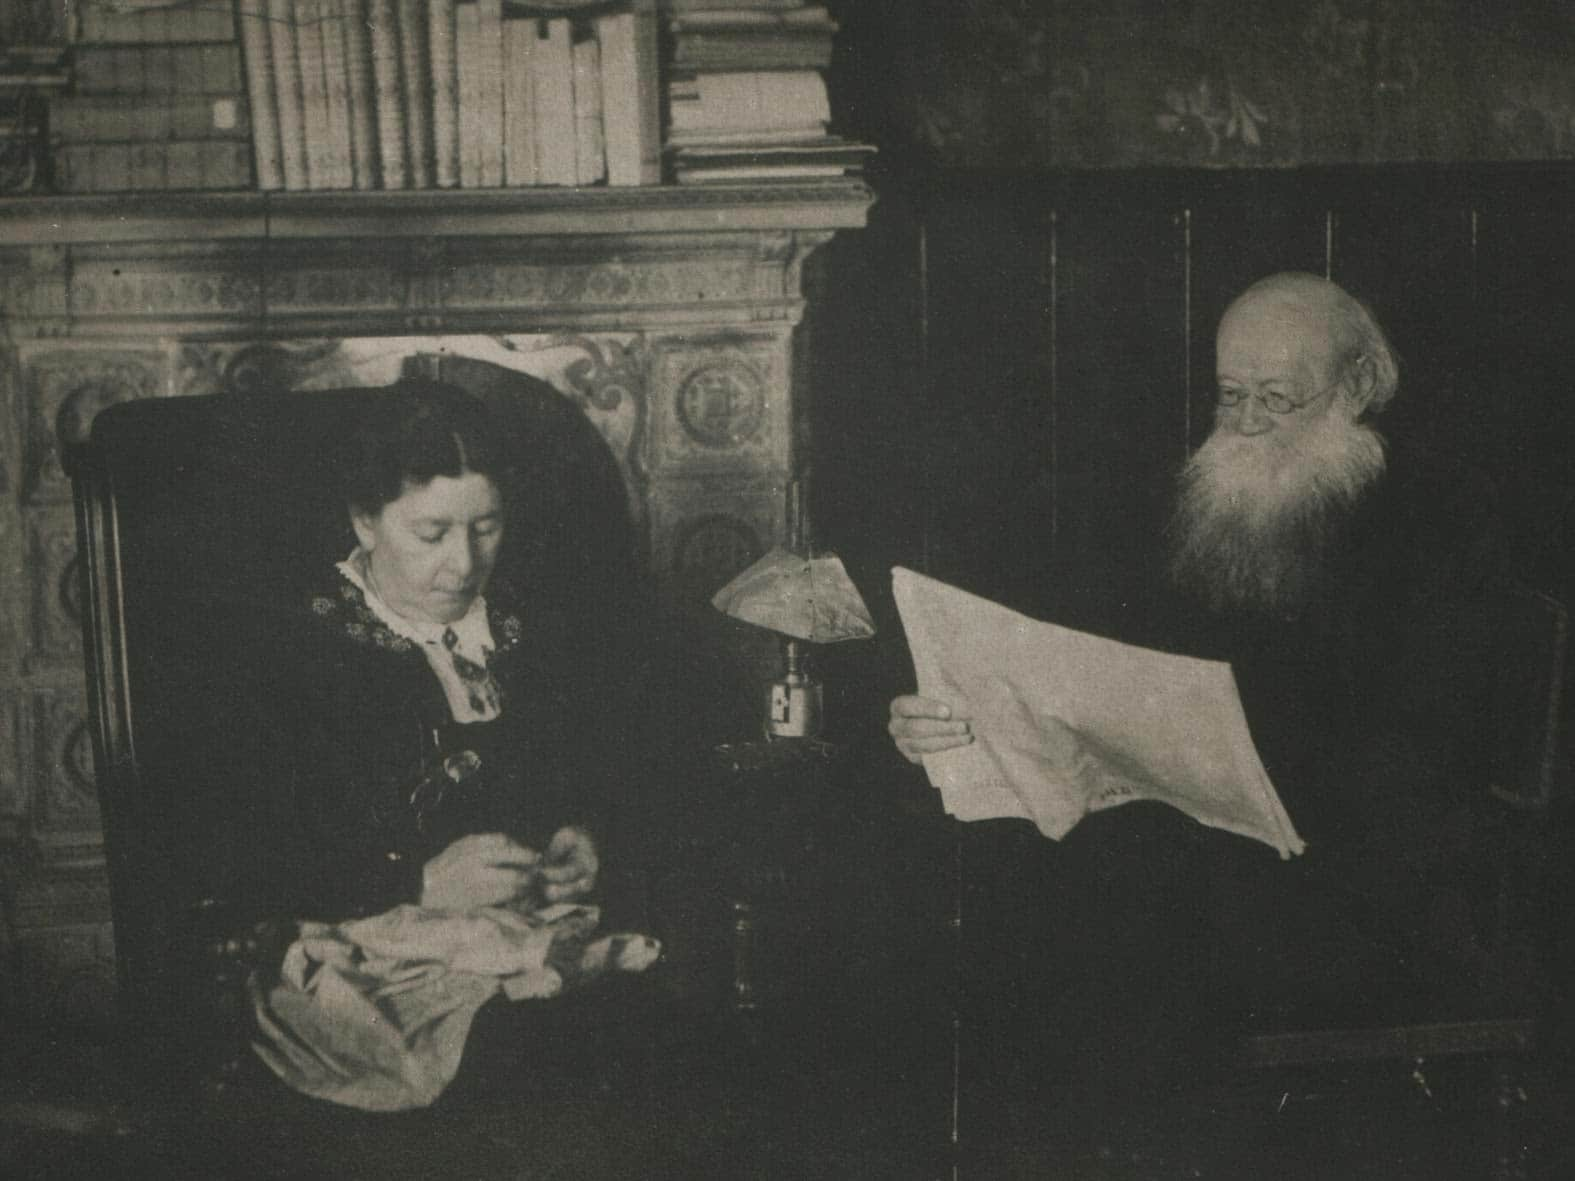 P.A.Kropotkin and his wife Sophia Grigorievna in their Dmitrov house, ca. 1920. Photo: Unknown.